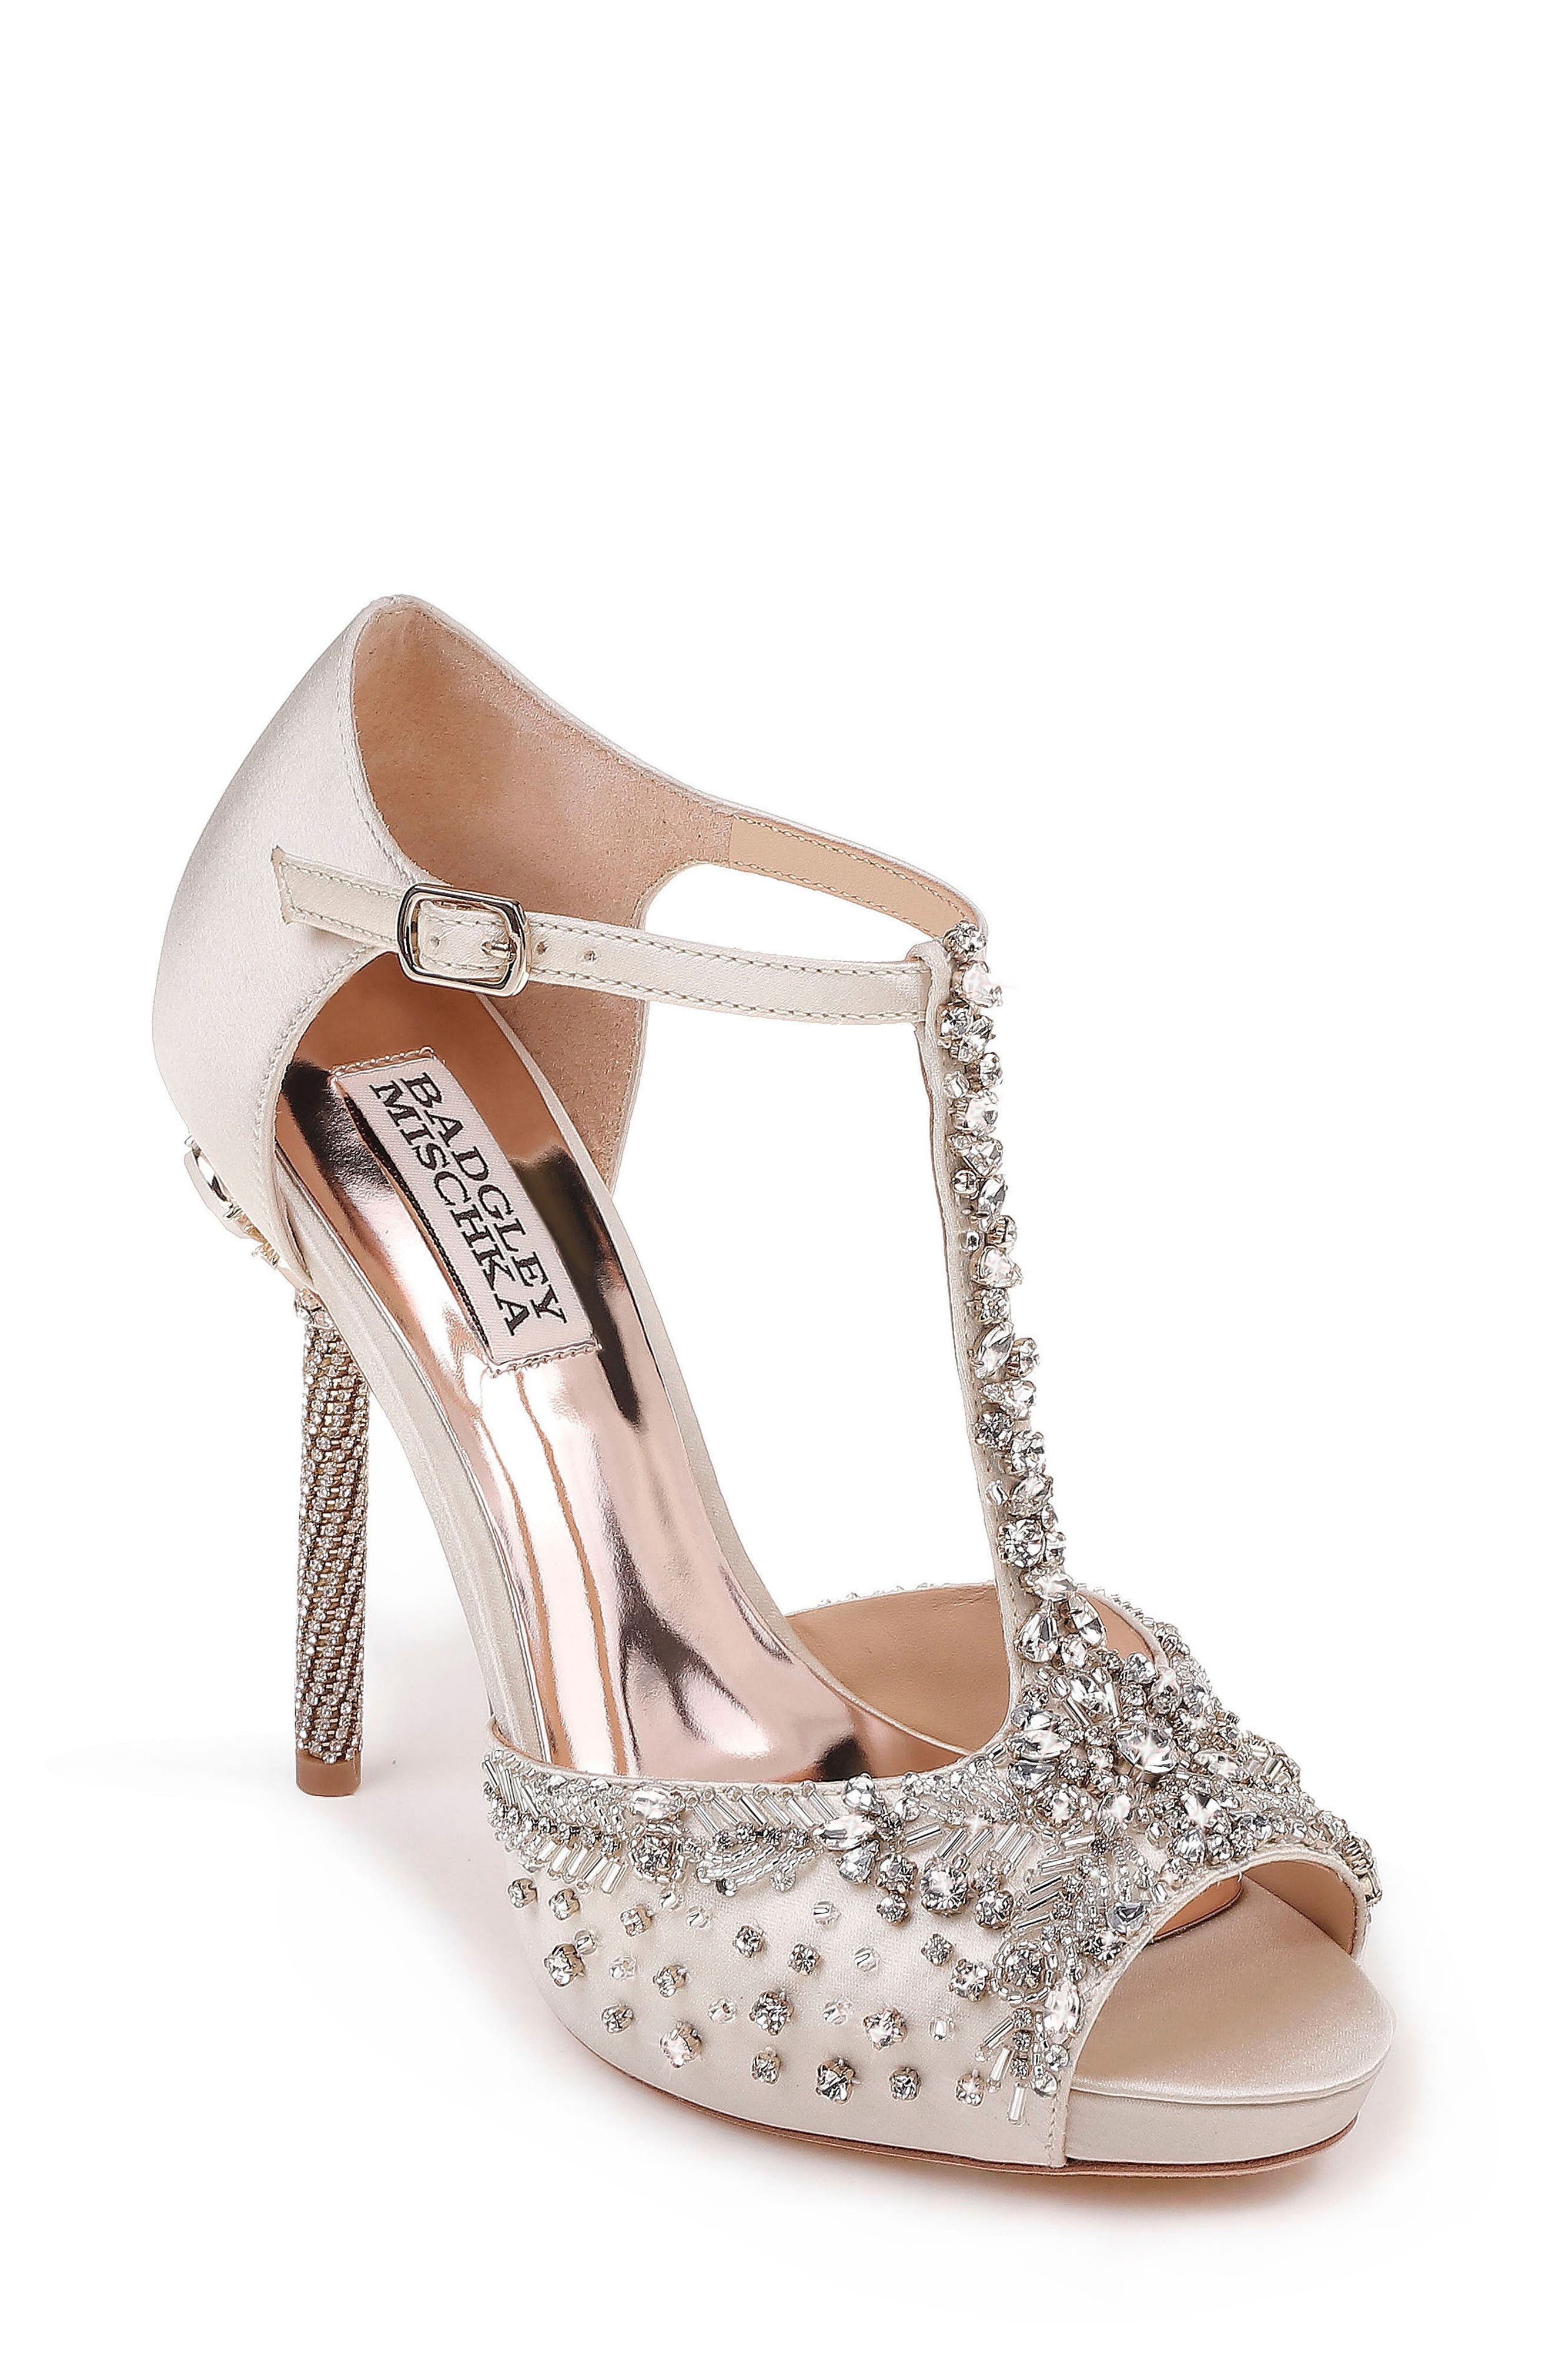 Stacey Crystal Embellished T-Strap Sandal,                         Main,                         color, Ivory Satin